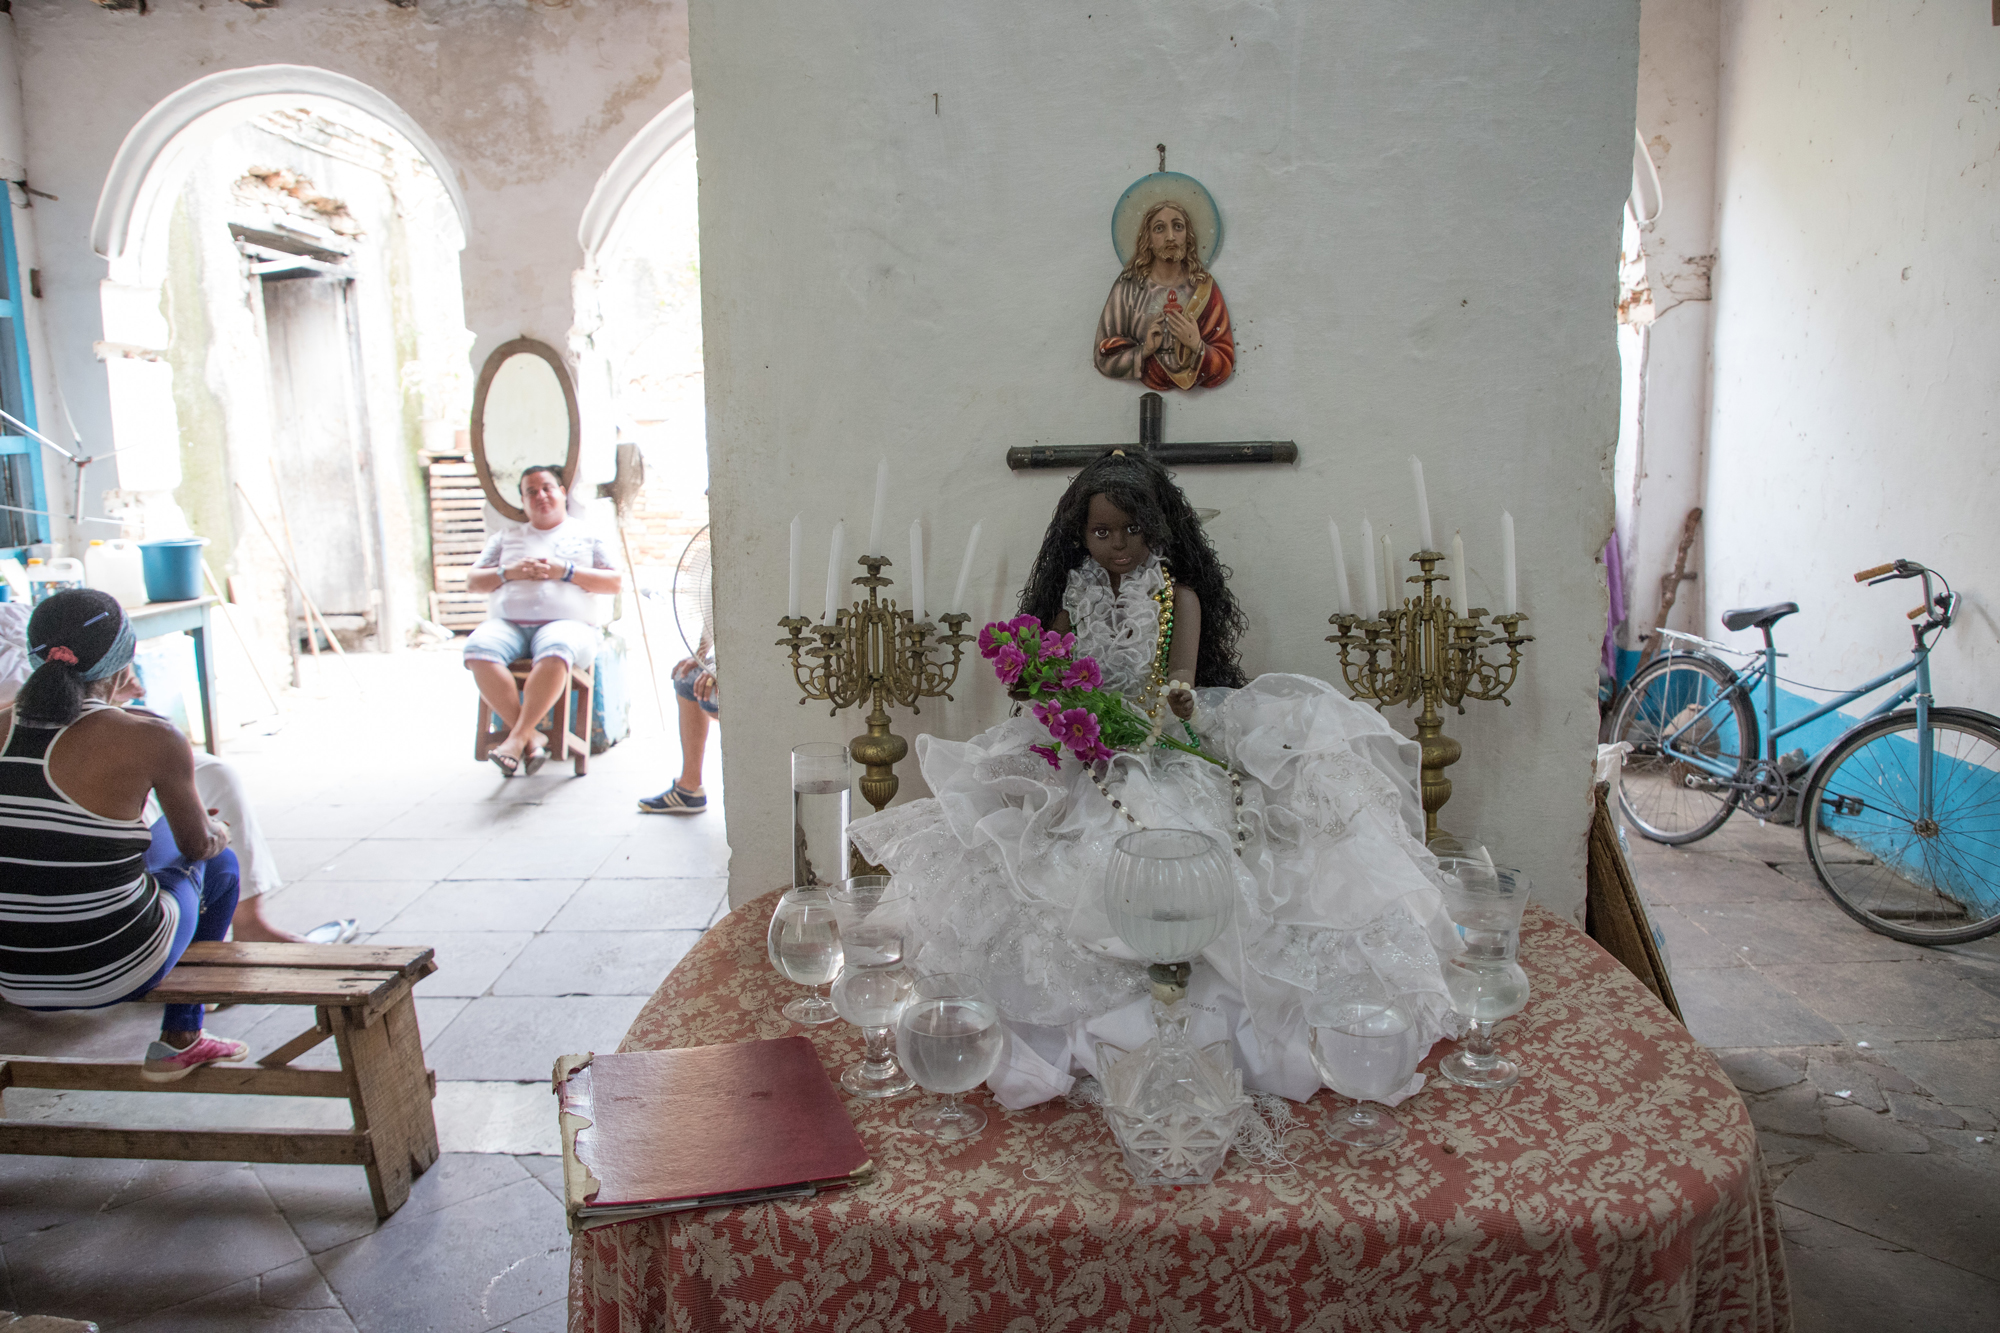 A doll representing Obatalá, the parent of all orishas, sits on a table in a Santería temple in Trinidad. Obatalá is identifiable for being dressed in all white and is syncretized with the Catholic Saint Mercedes. (Photo by Riley Robinson/The GroundTruth Project)